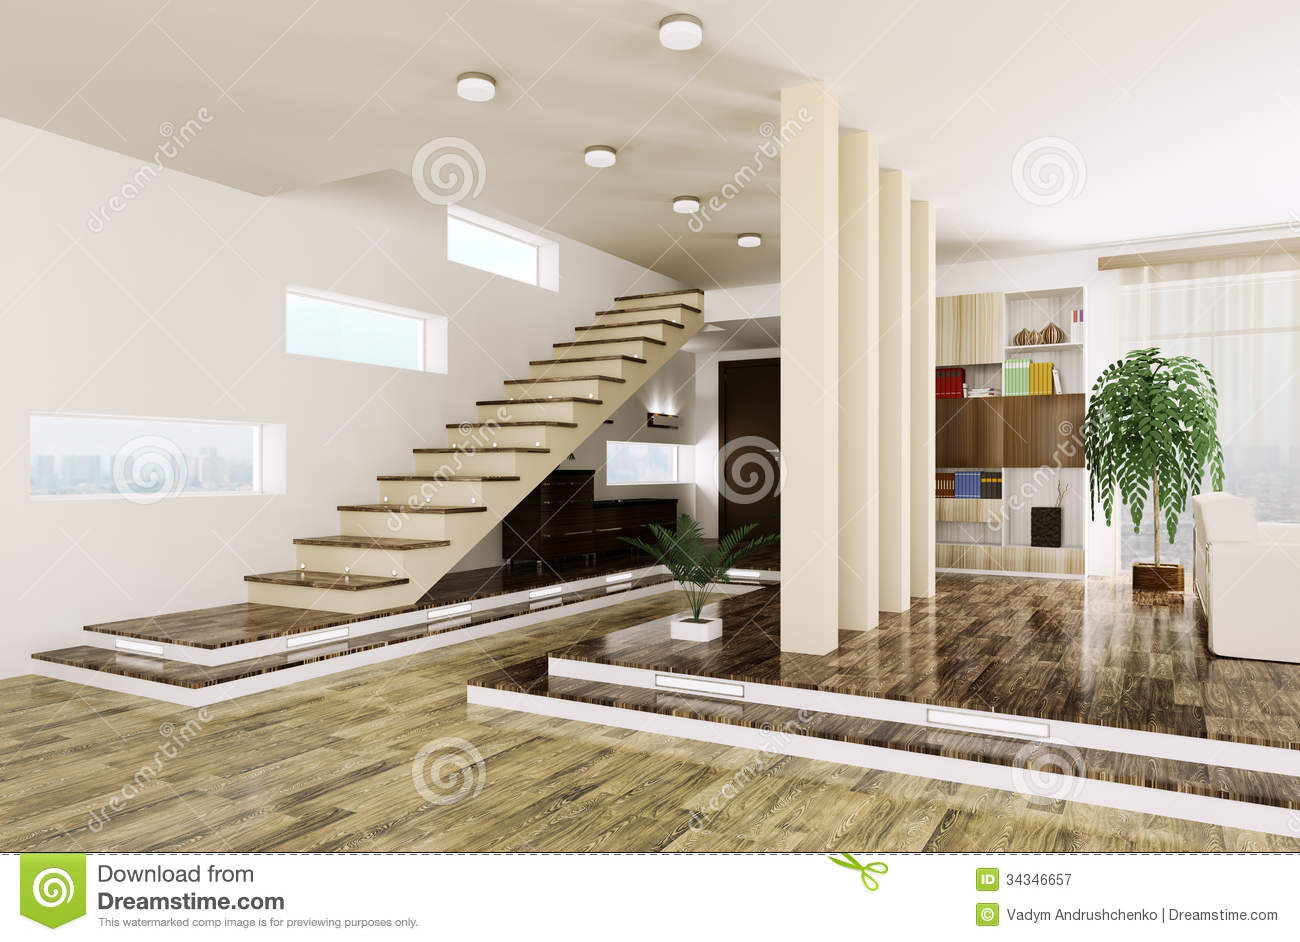 Entrance hall interior 3d render stock illustration for Modern entrance hall